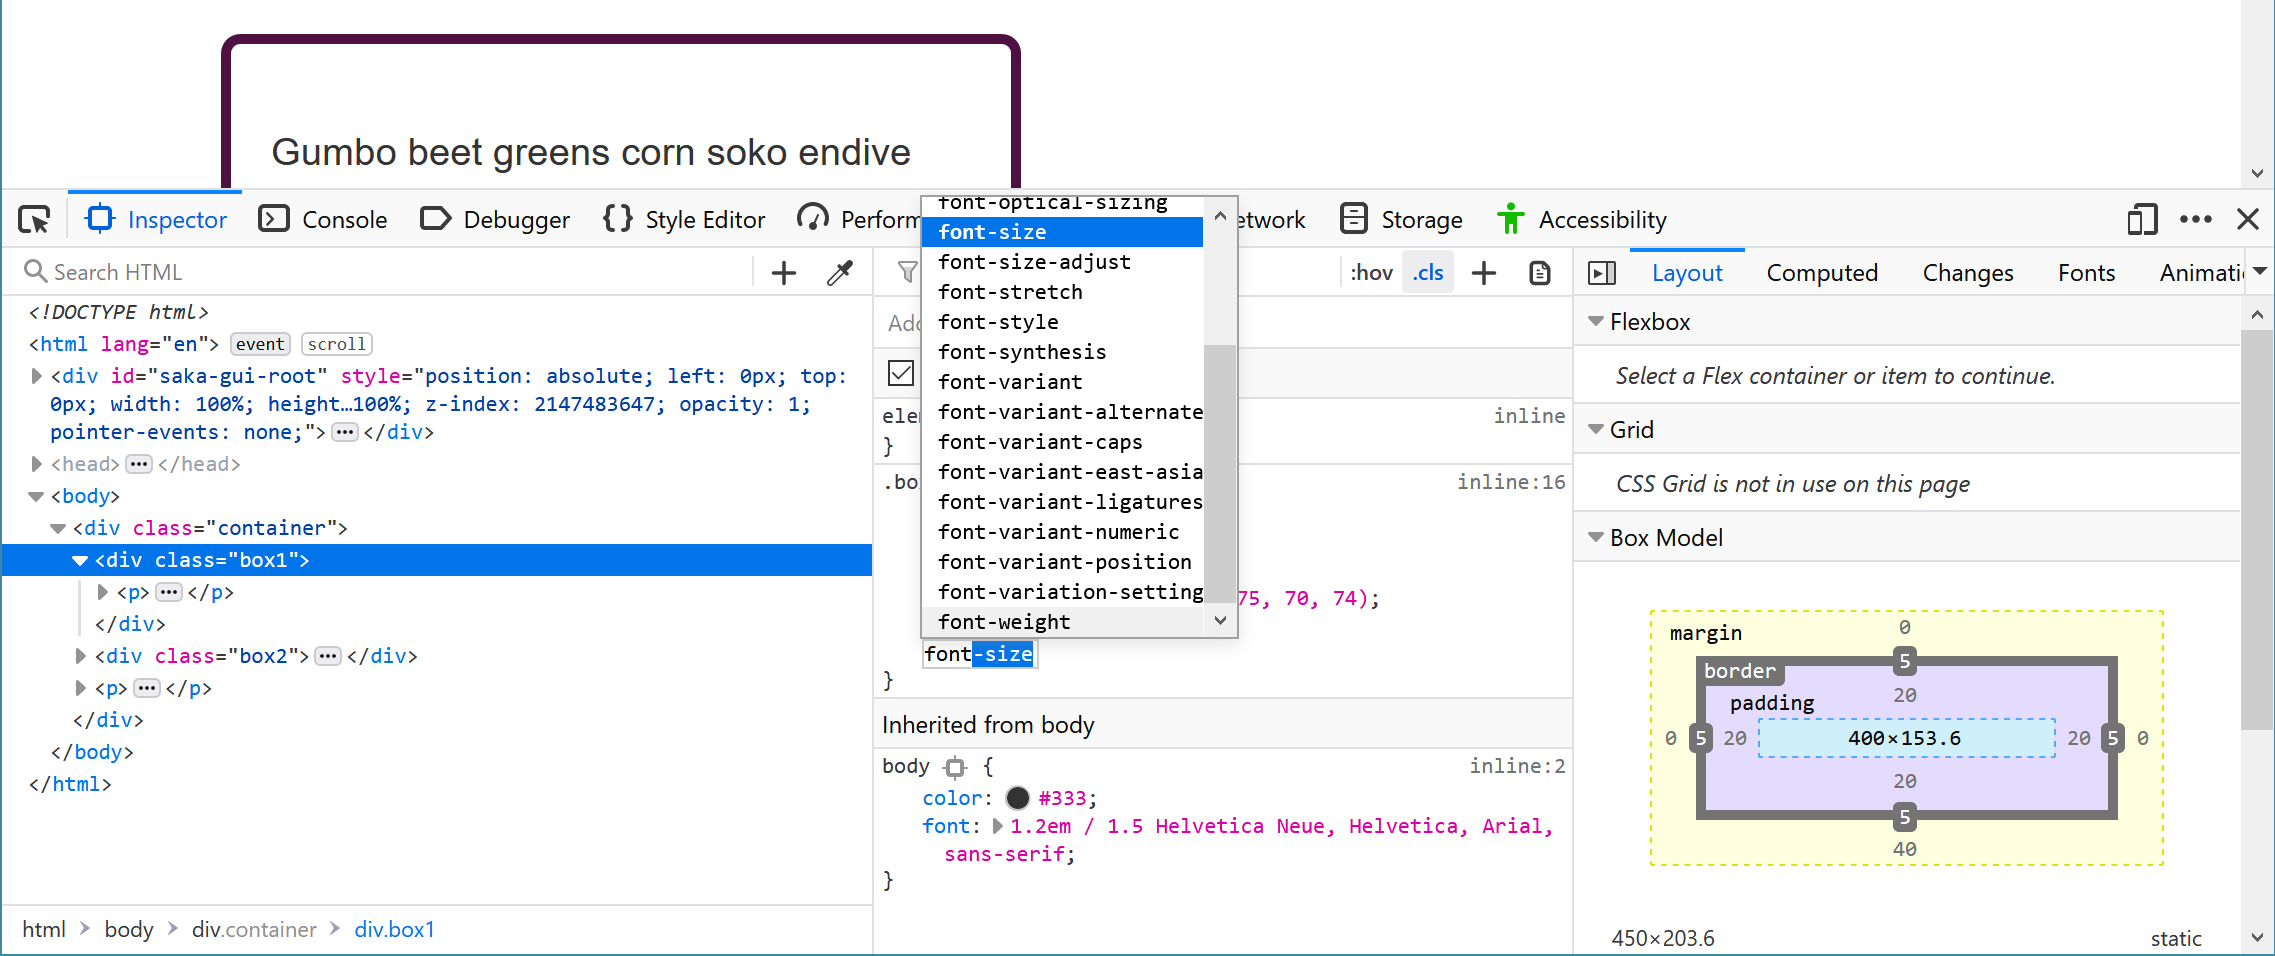 The DevTools Panel, adding a new property to the rules, with the autocomplete for font- open